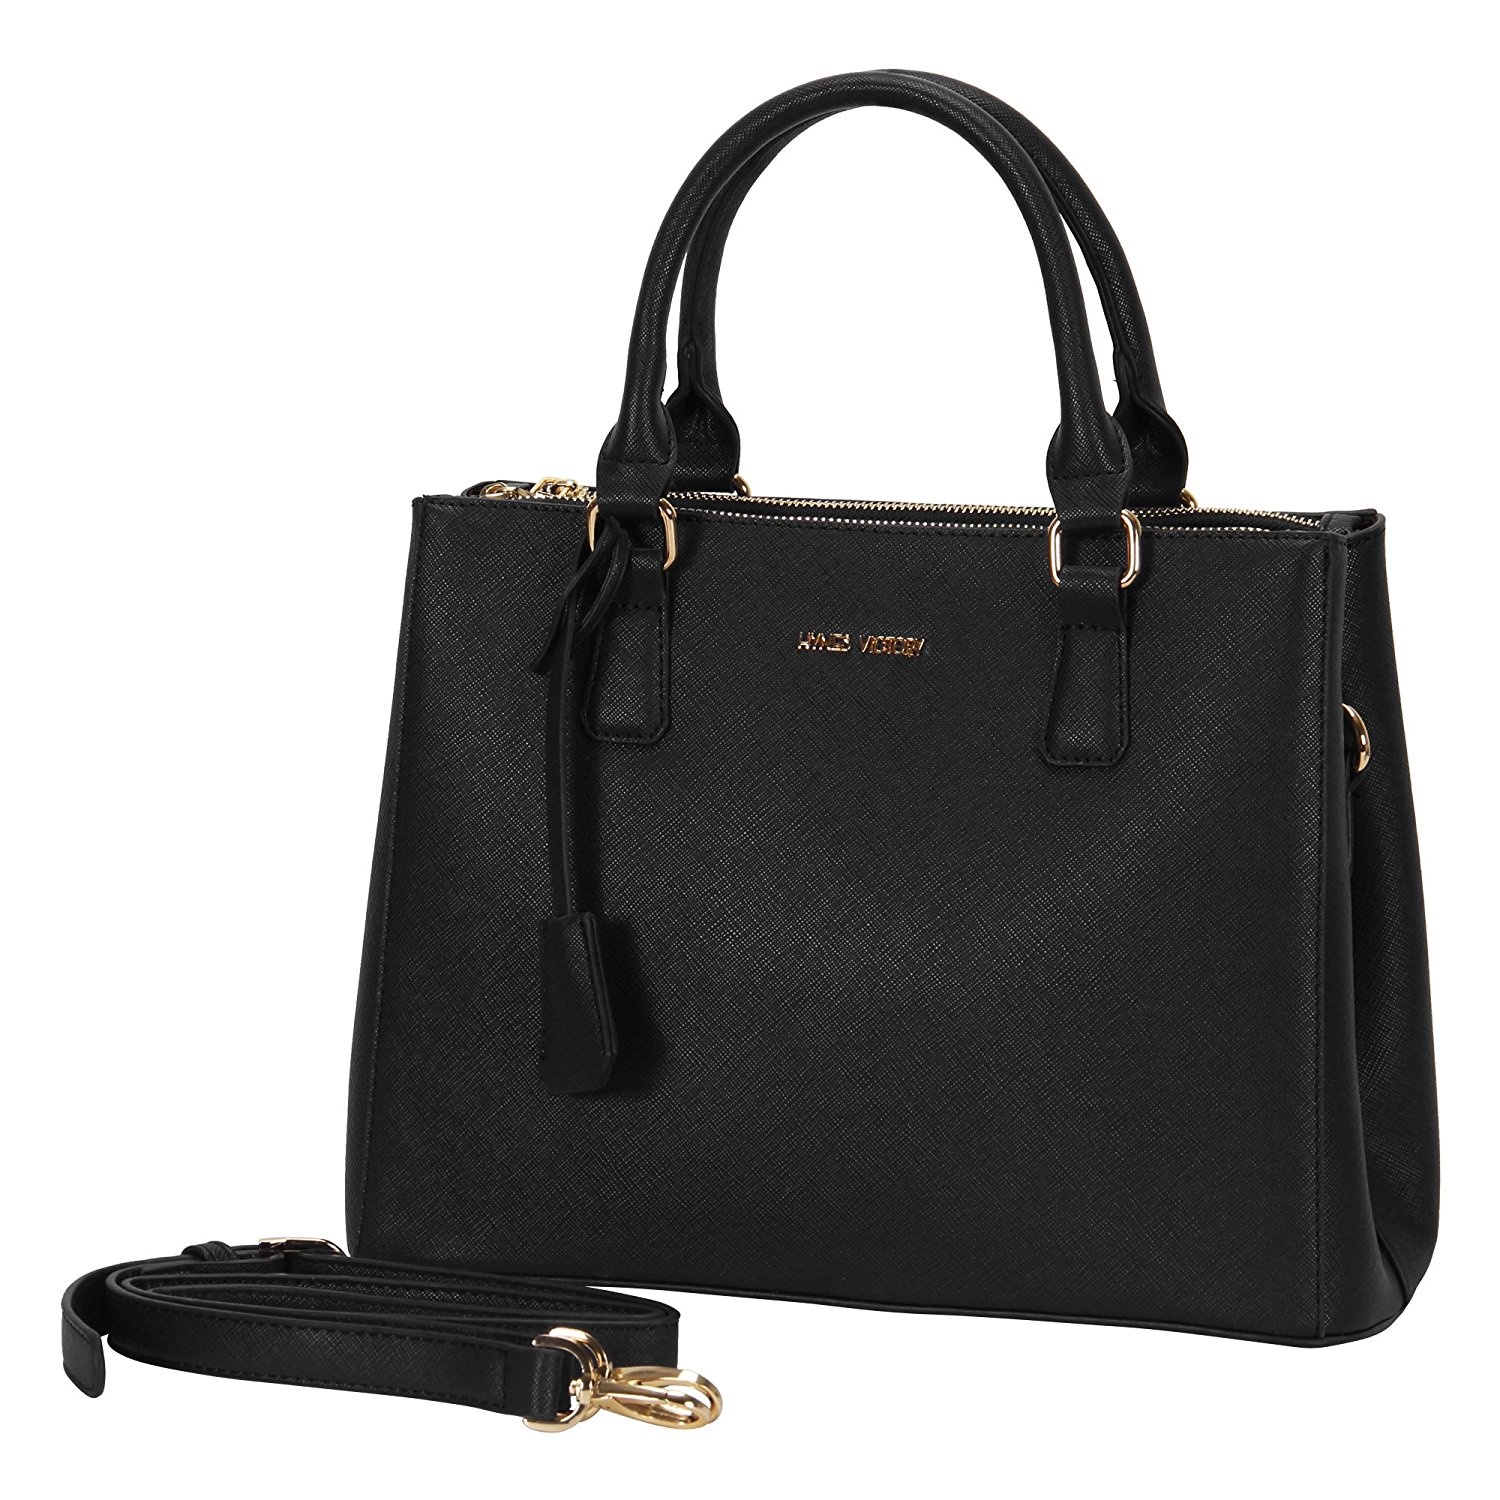 Amazon.com: Hynes Victory Womens Classy Satchel Handbag (Black): Shoes